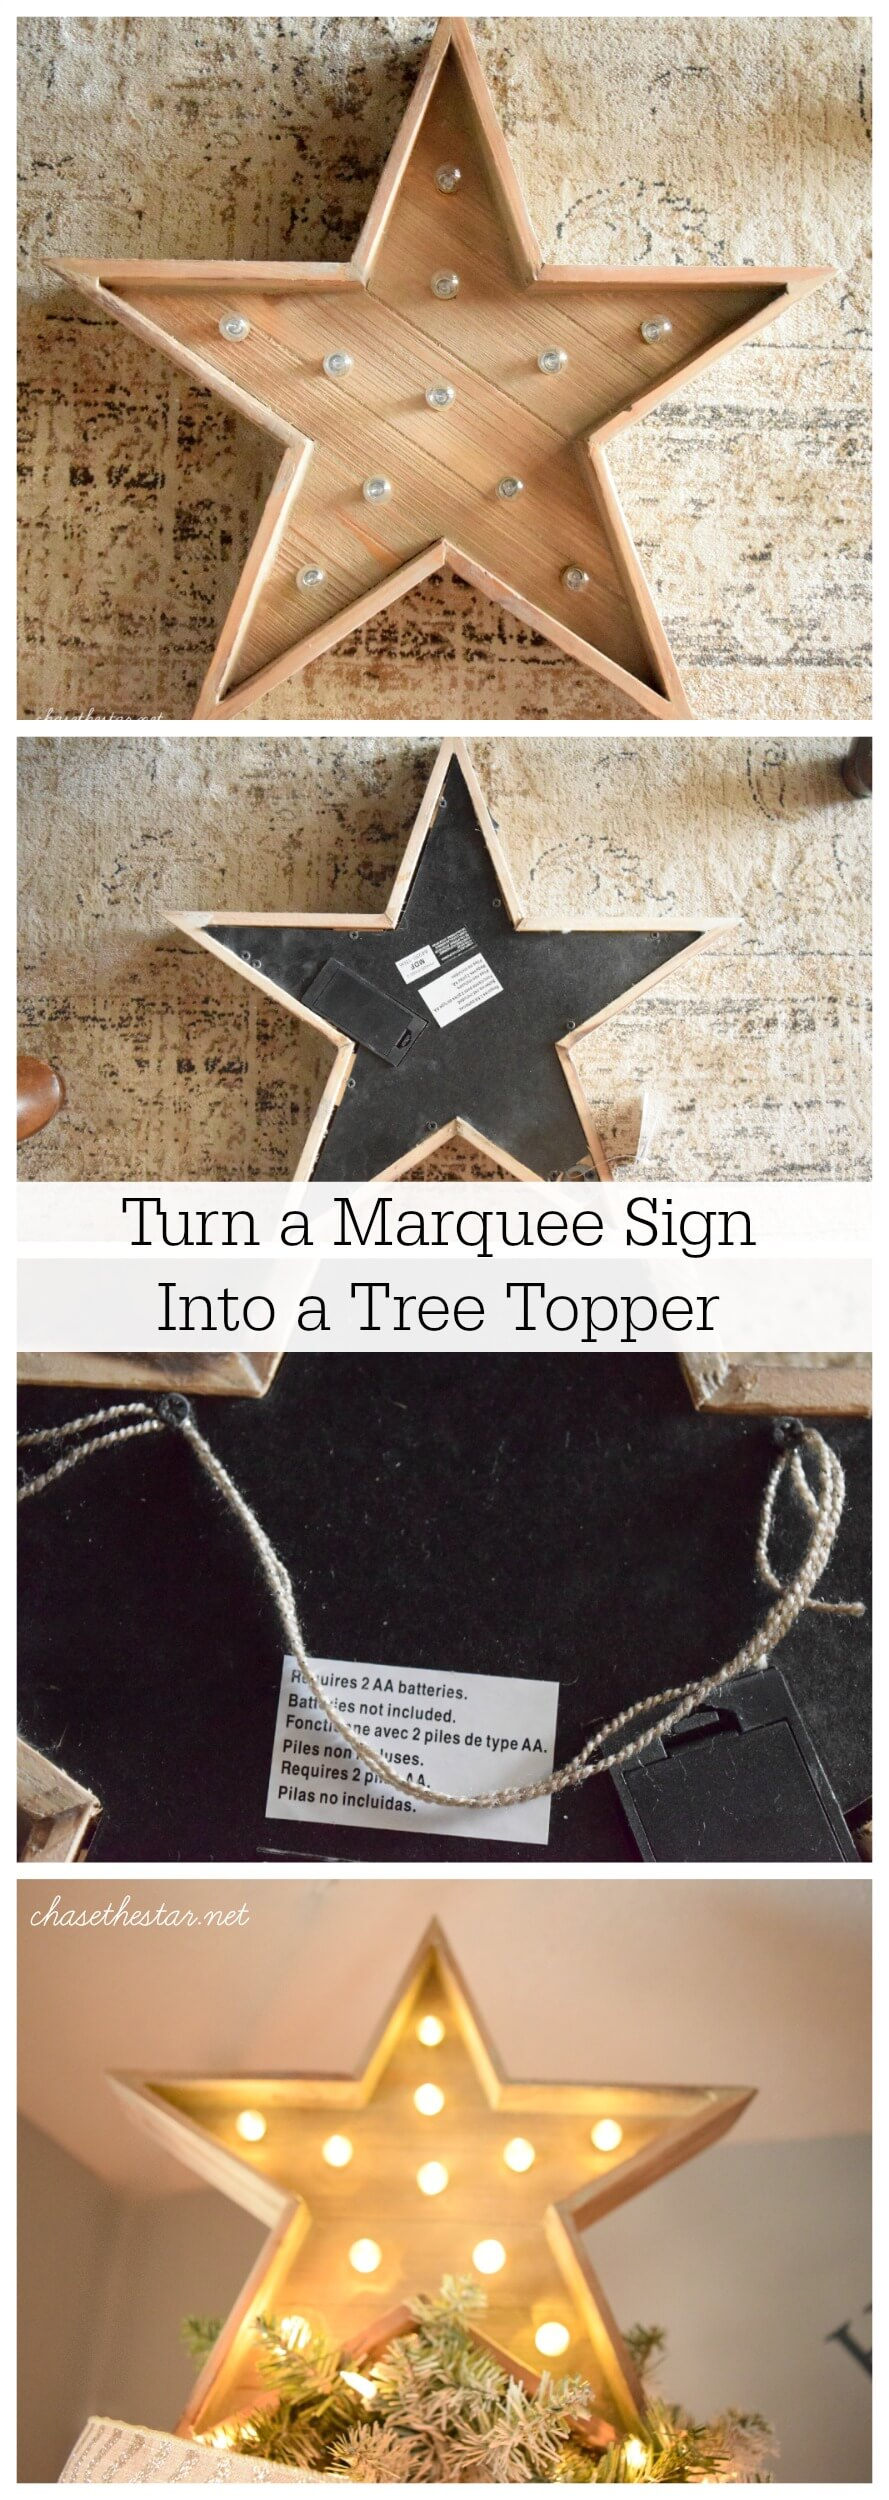 Turn a Star Marquee into a Tree-Topper